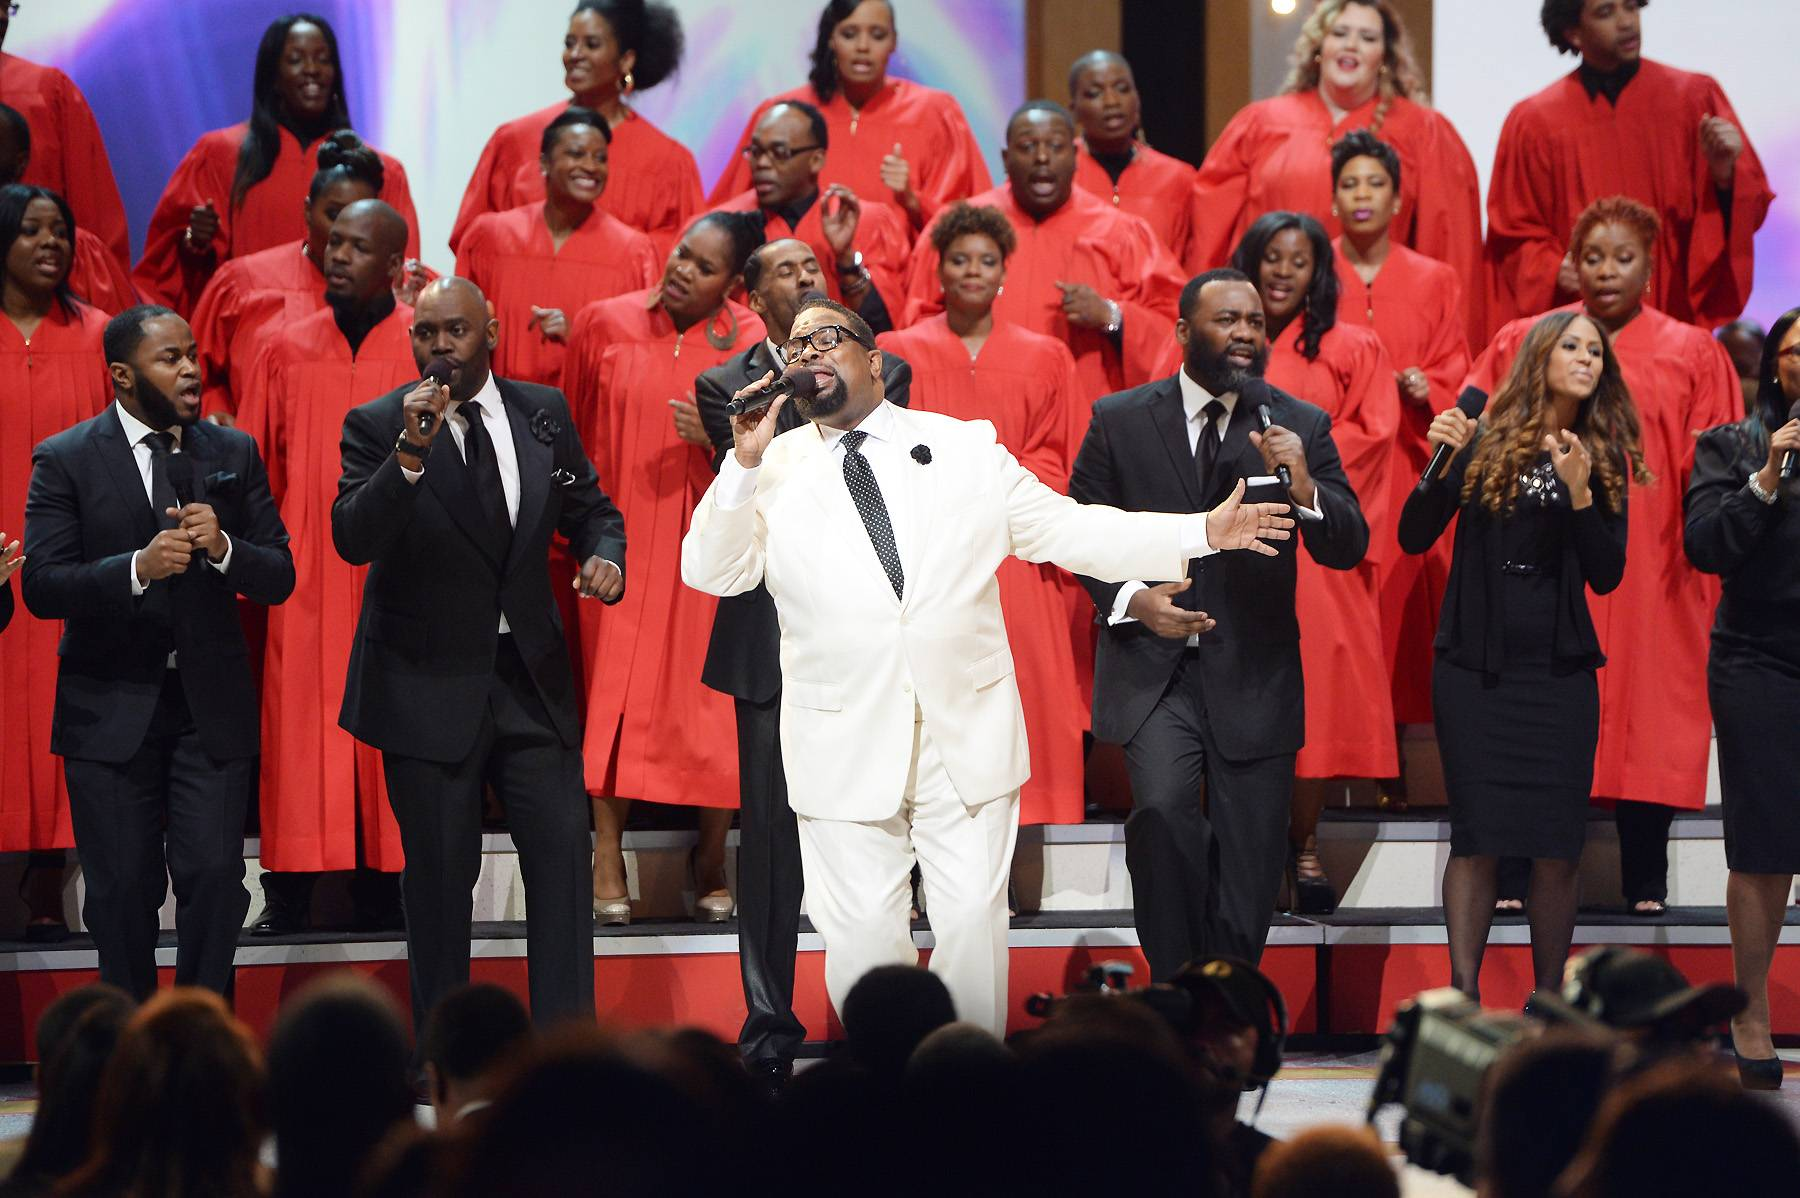 """Every Praise - Bishop Hezekiah Walker performs his No. 1 hit """"Every Praise."""" Tune in and sing along on Sunday, April 6 at 8P/7C.(Photo: Jason Kempin/Getty Images for BET)"""